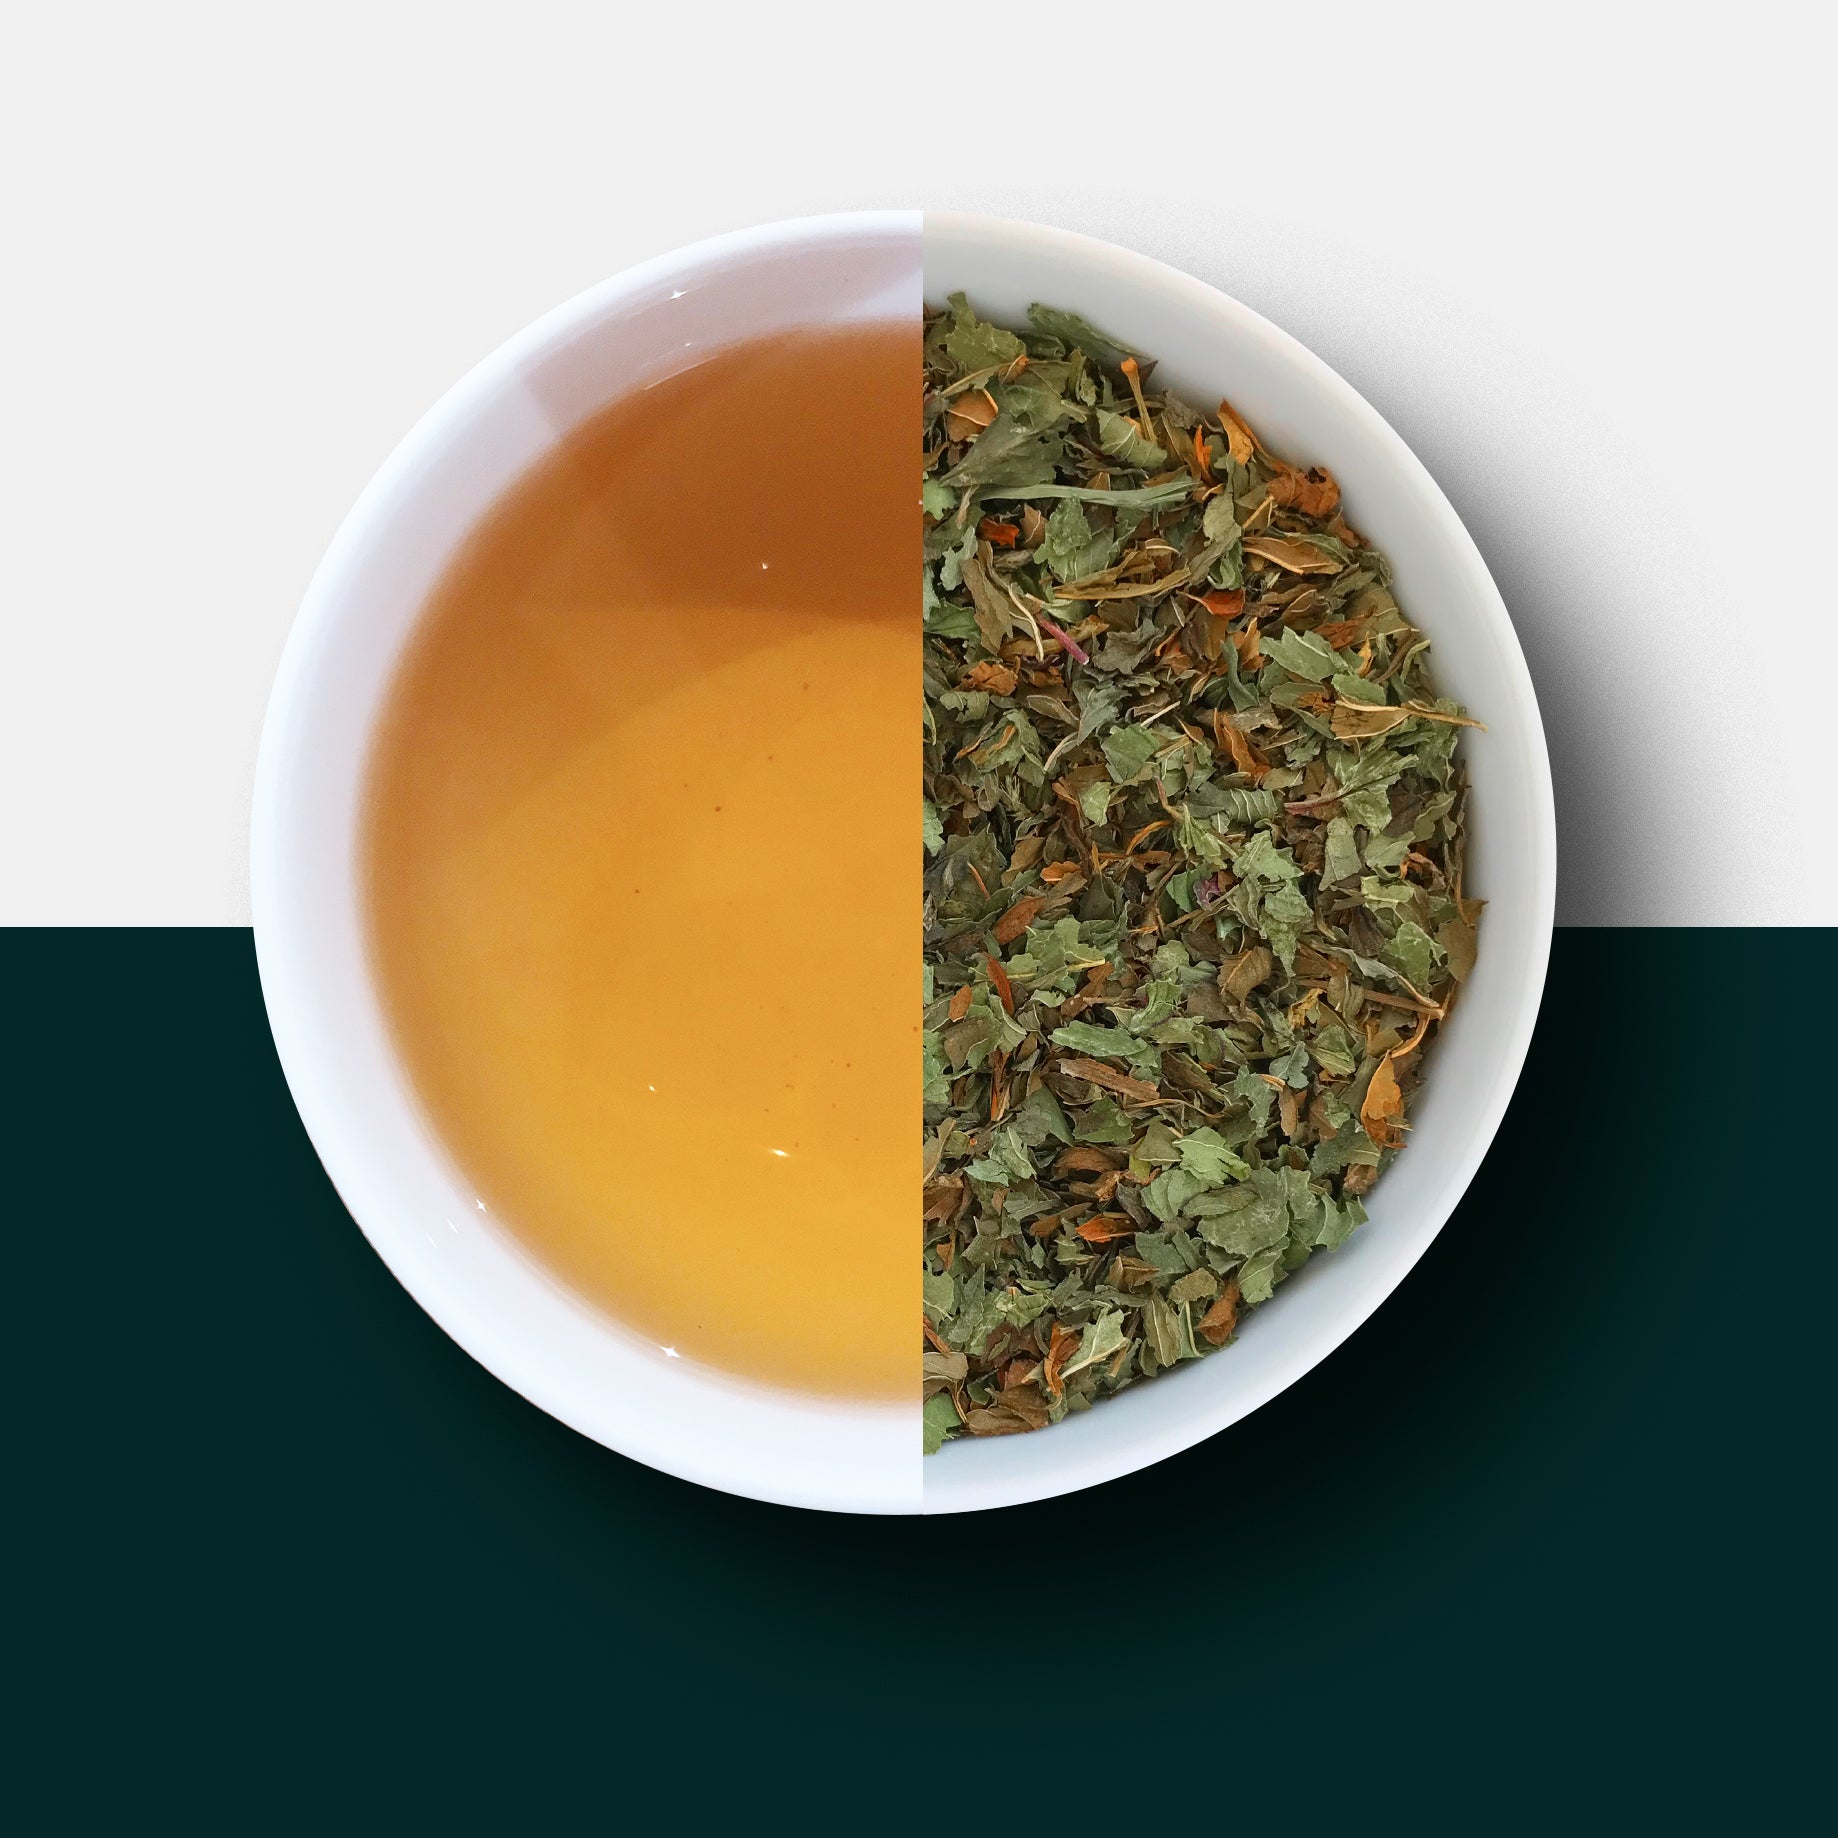 Peppermint tea - loose leaves and liquid